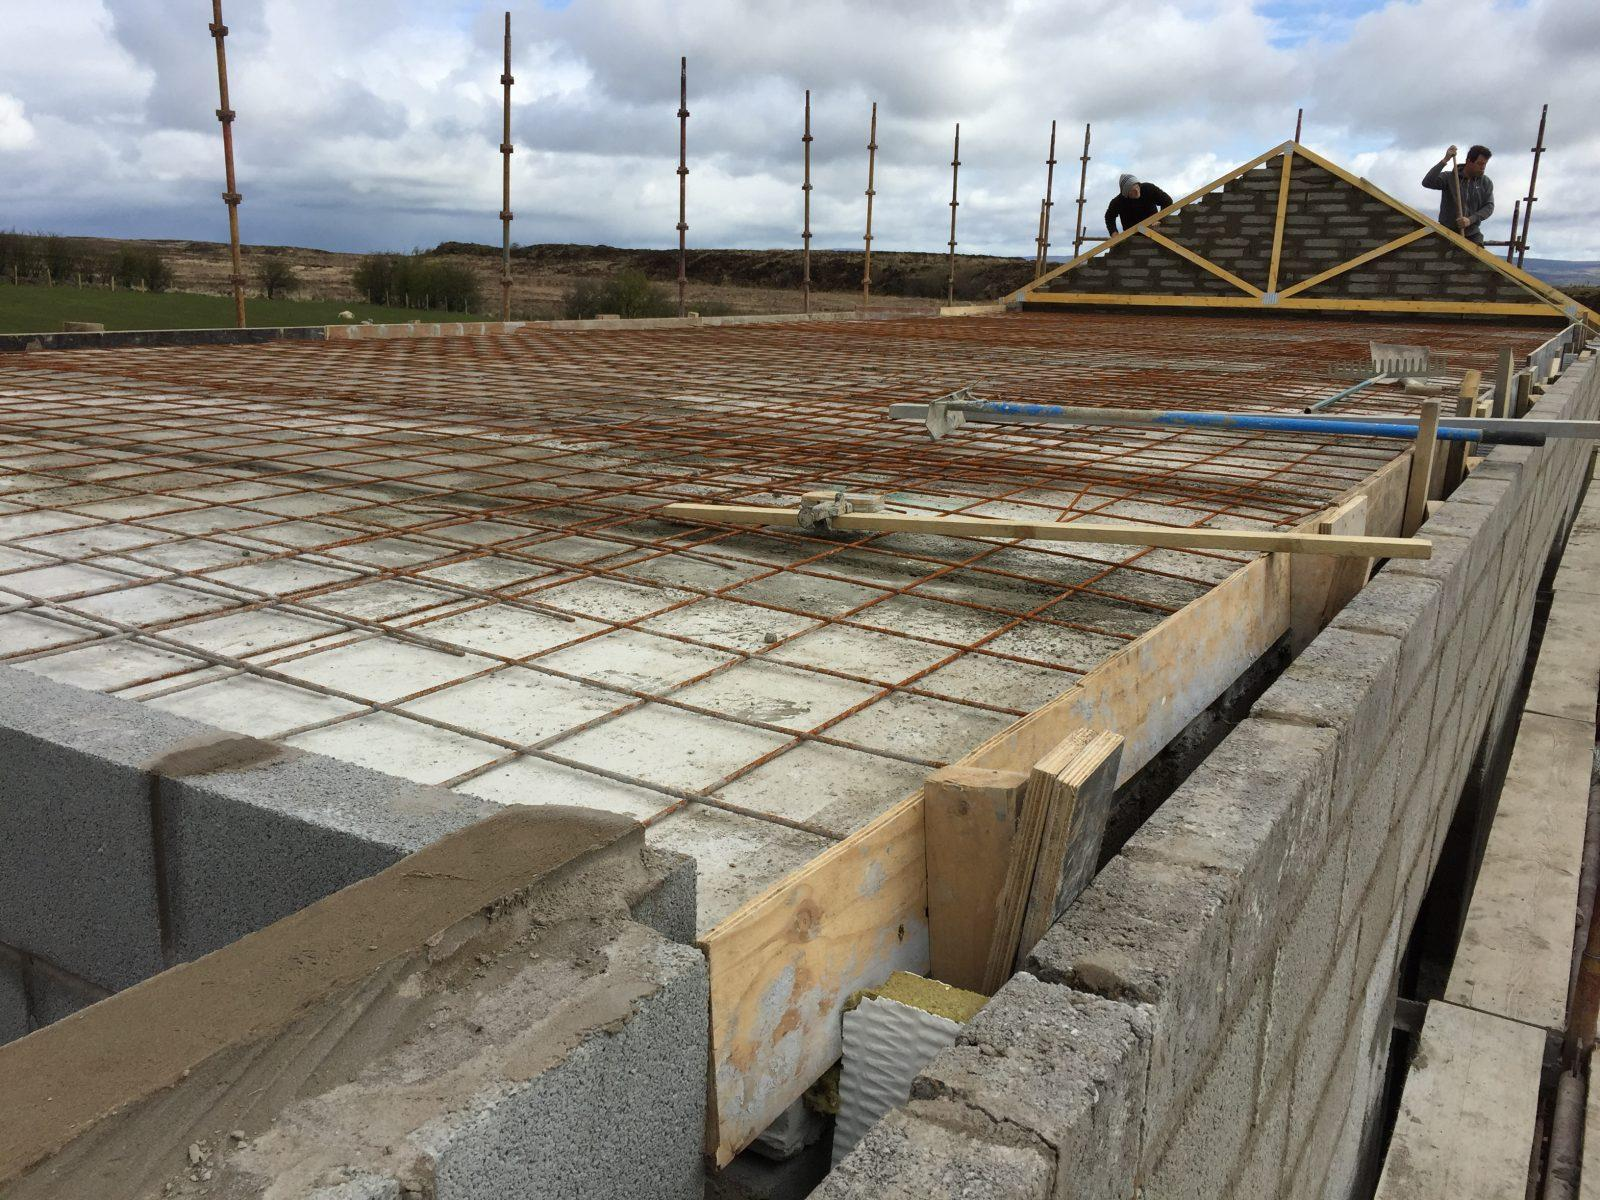 concrete slabs of substation roof